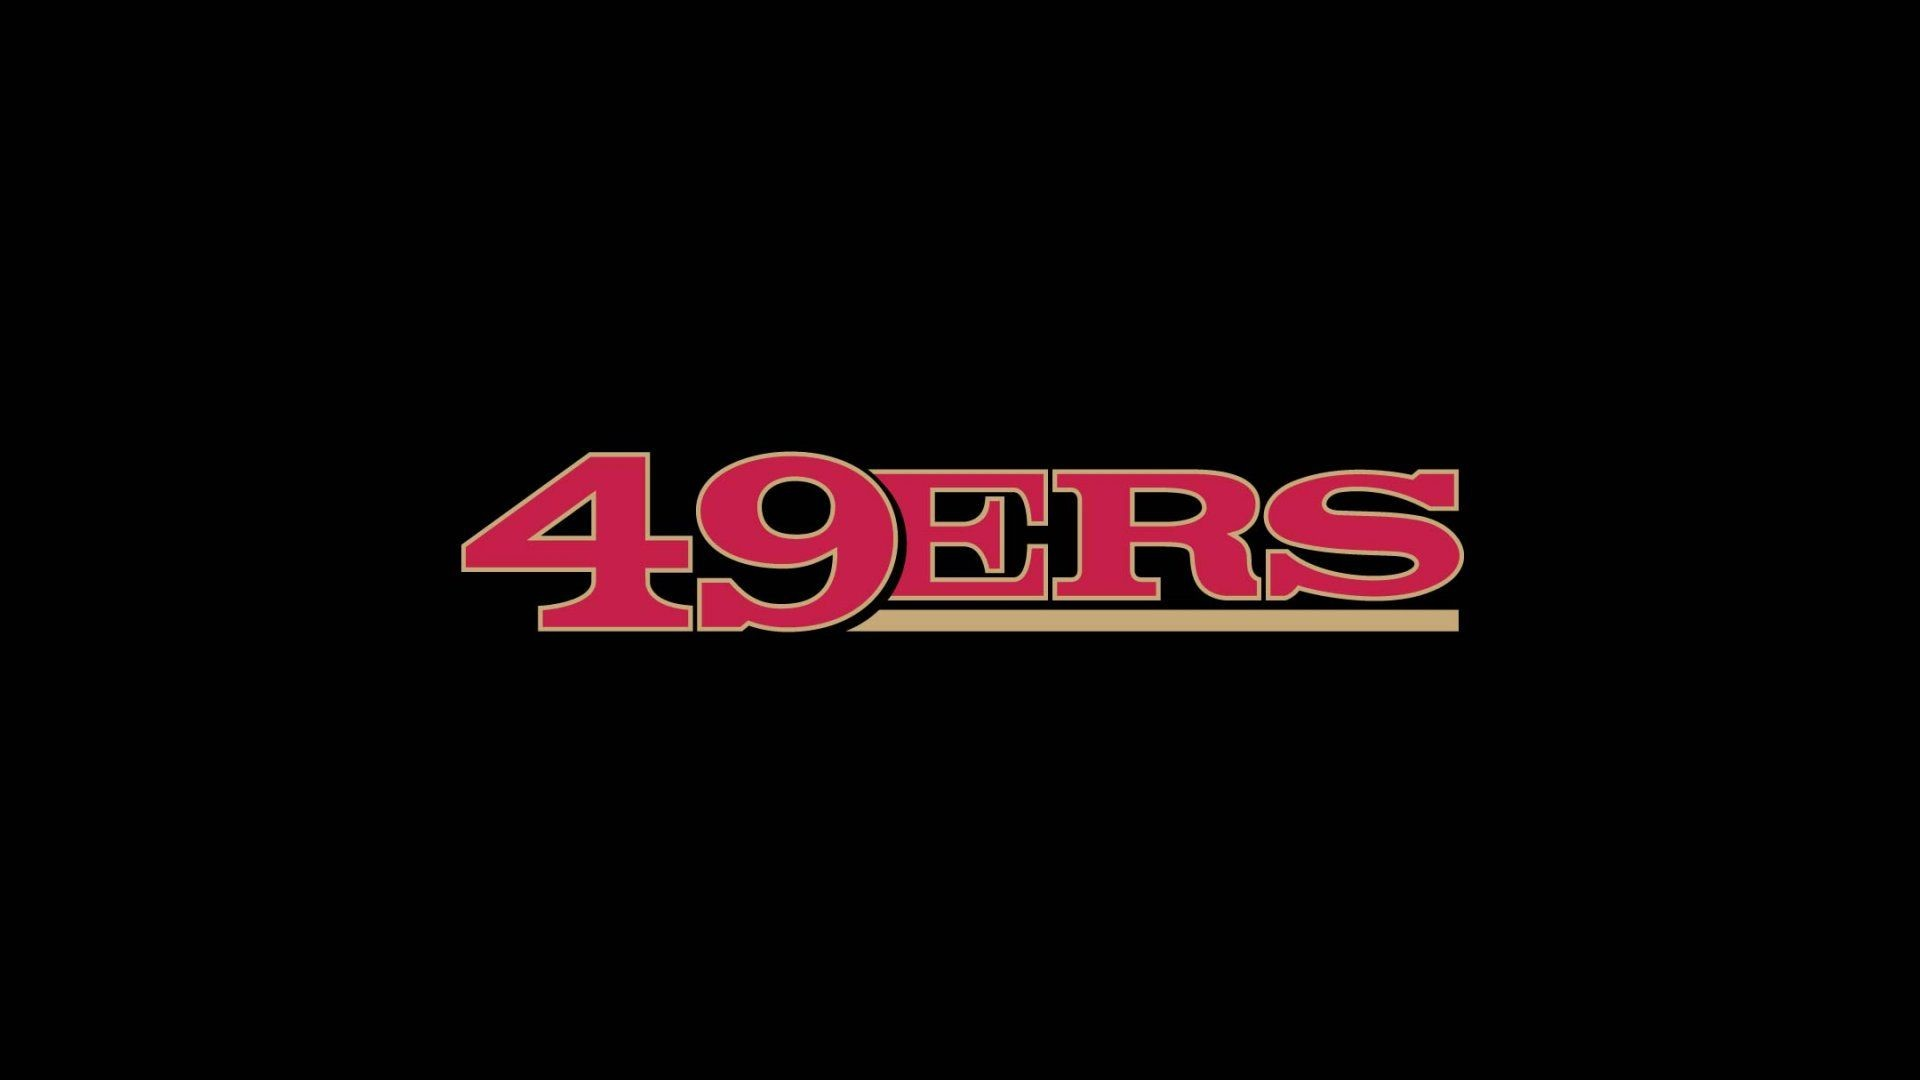 1920x1080 Free 49ers Wallpapers Your Phone - Wallpaper Cave